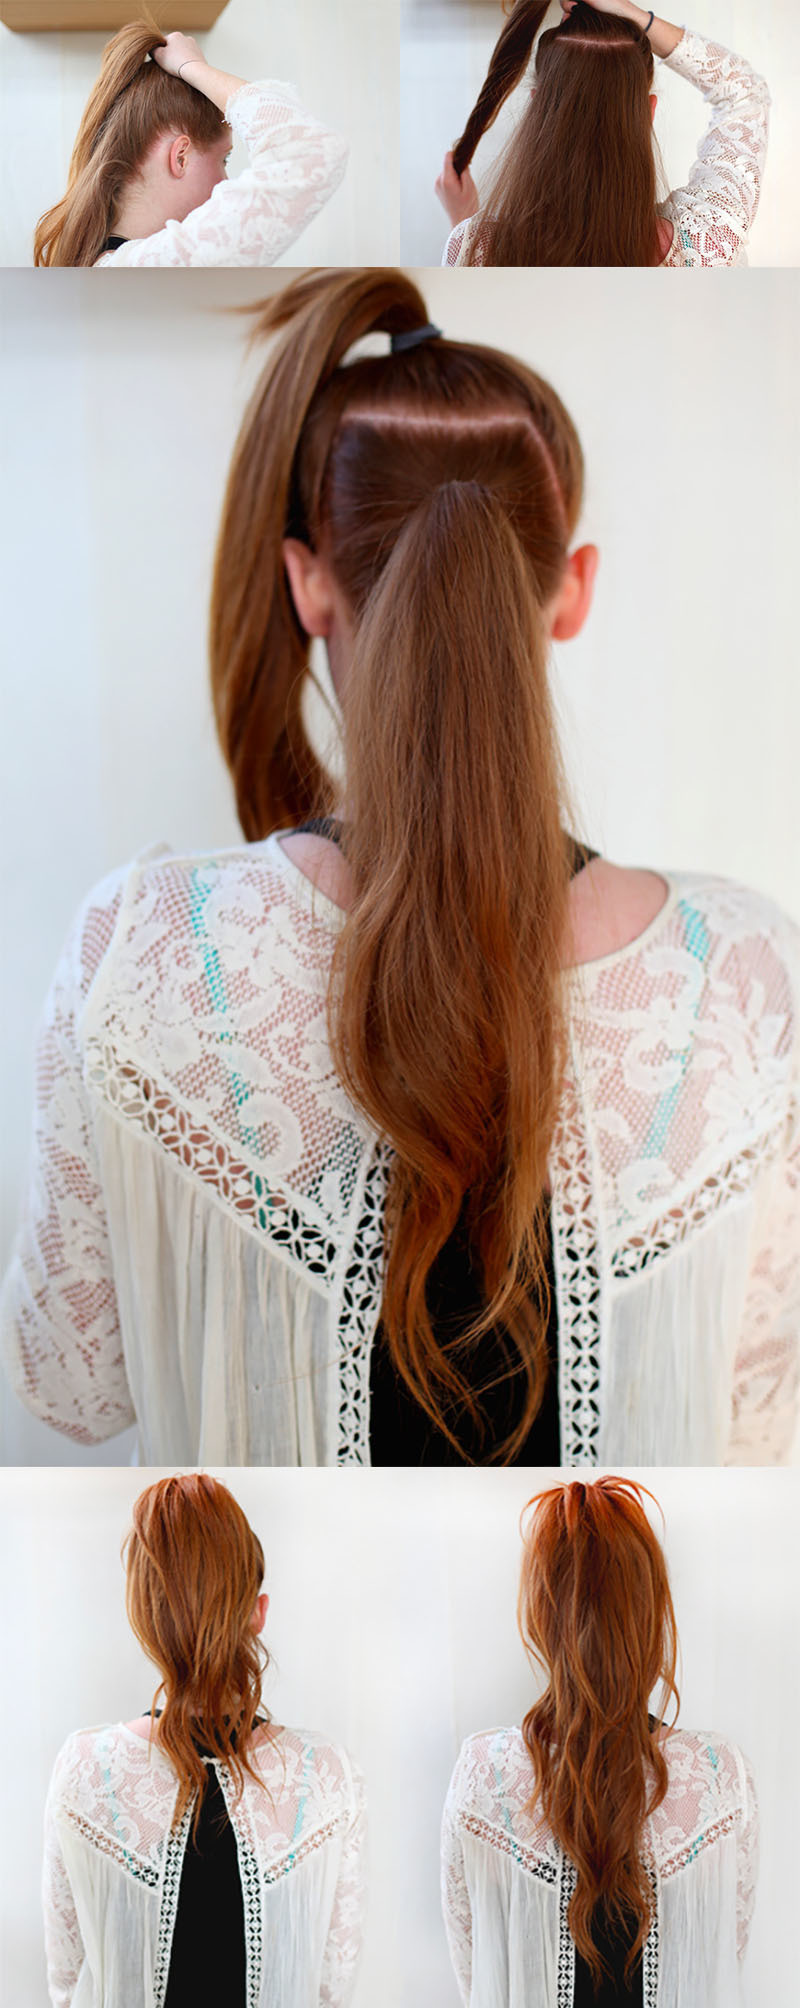 Best ideas about Easy To Style Haircuts . Save or Pin 20 Easy Hairstyles For Women Who've Got No Time 7 Is A Now.